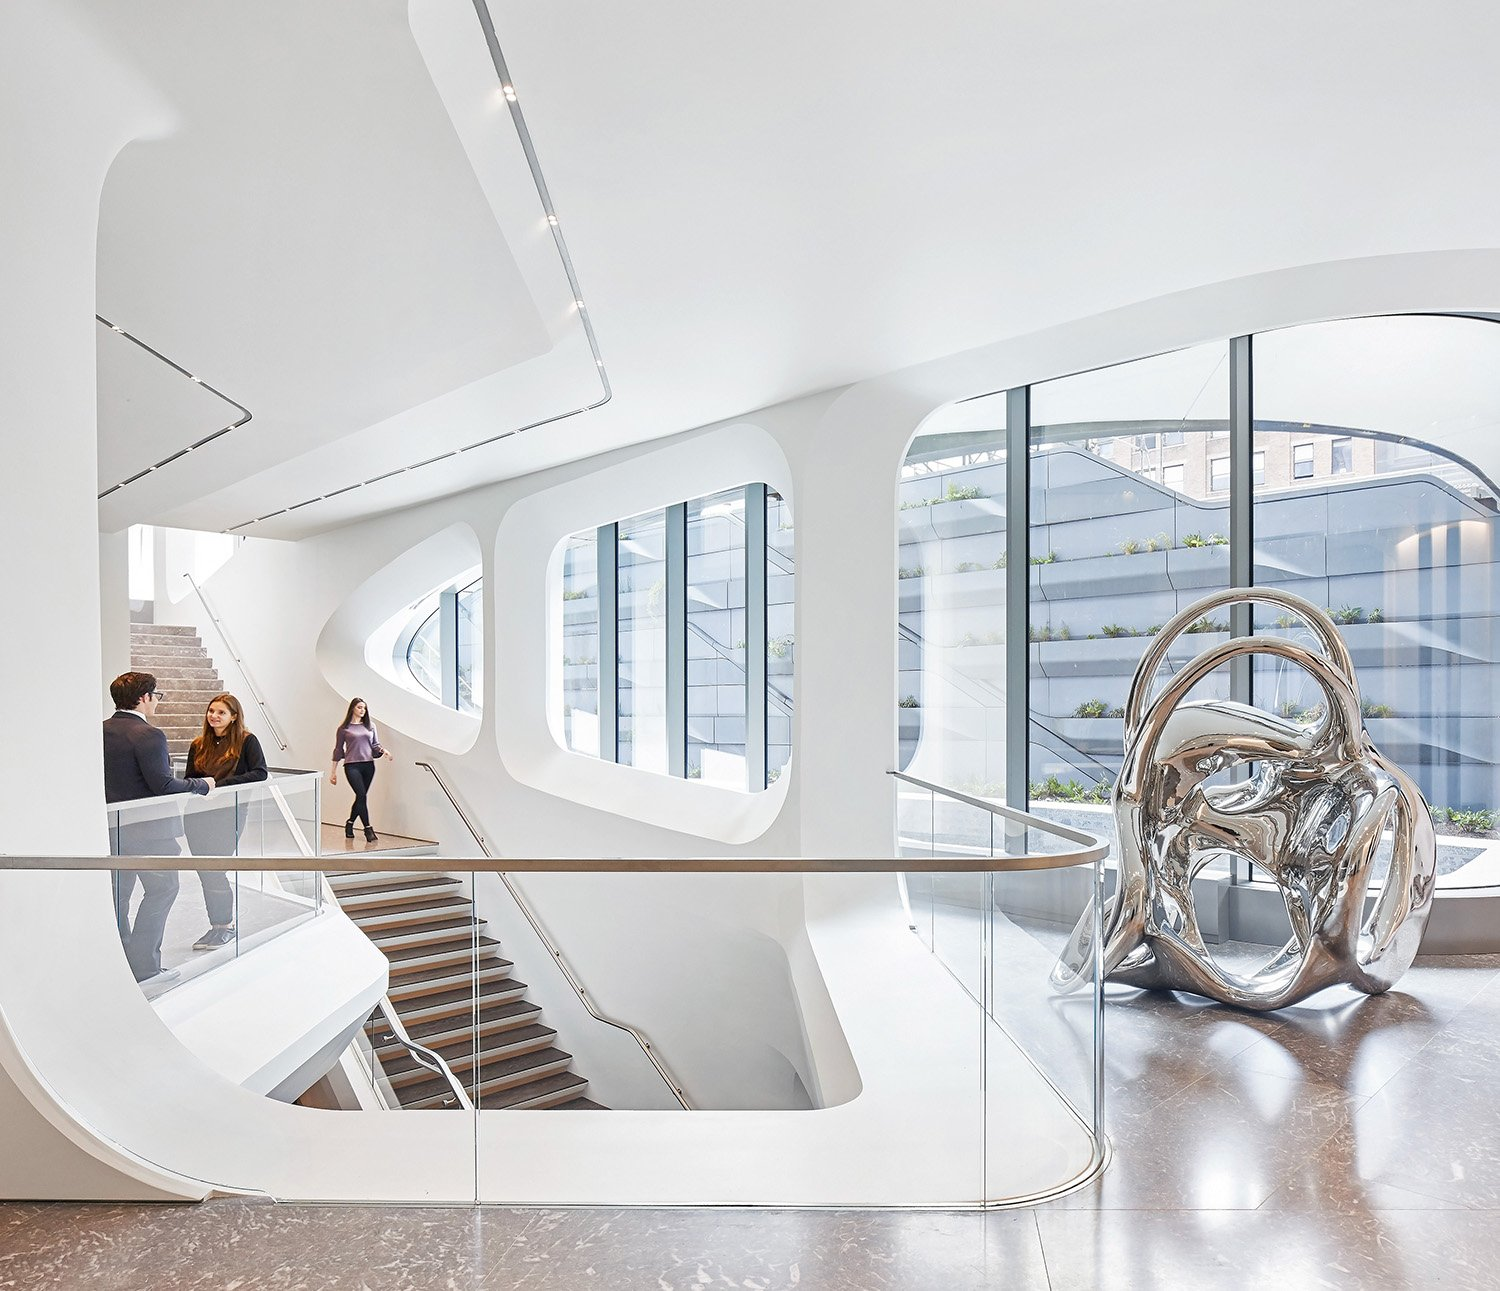 Interior Staircase Photograph by Hufton + Crow